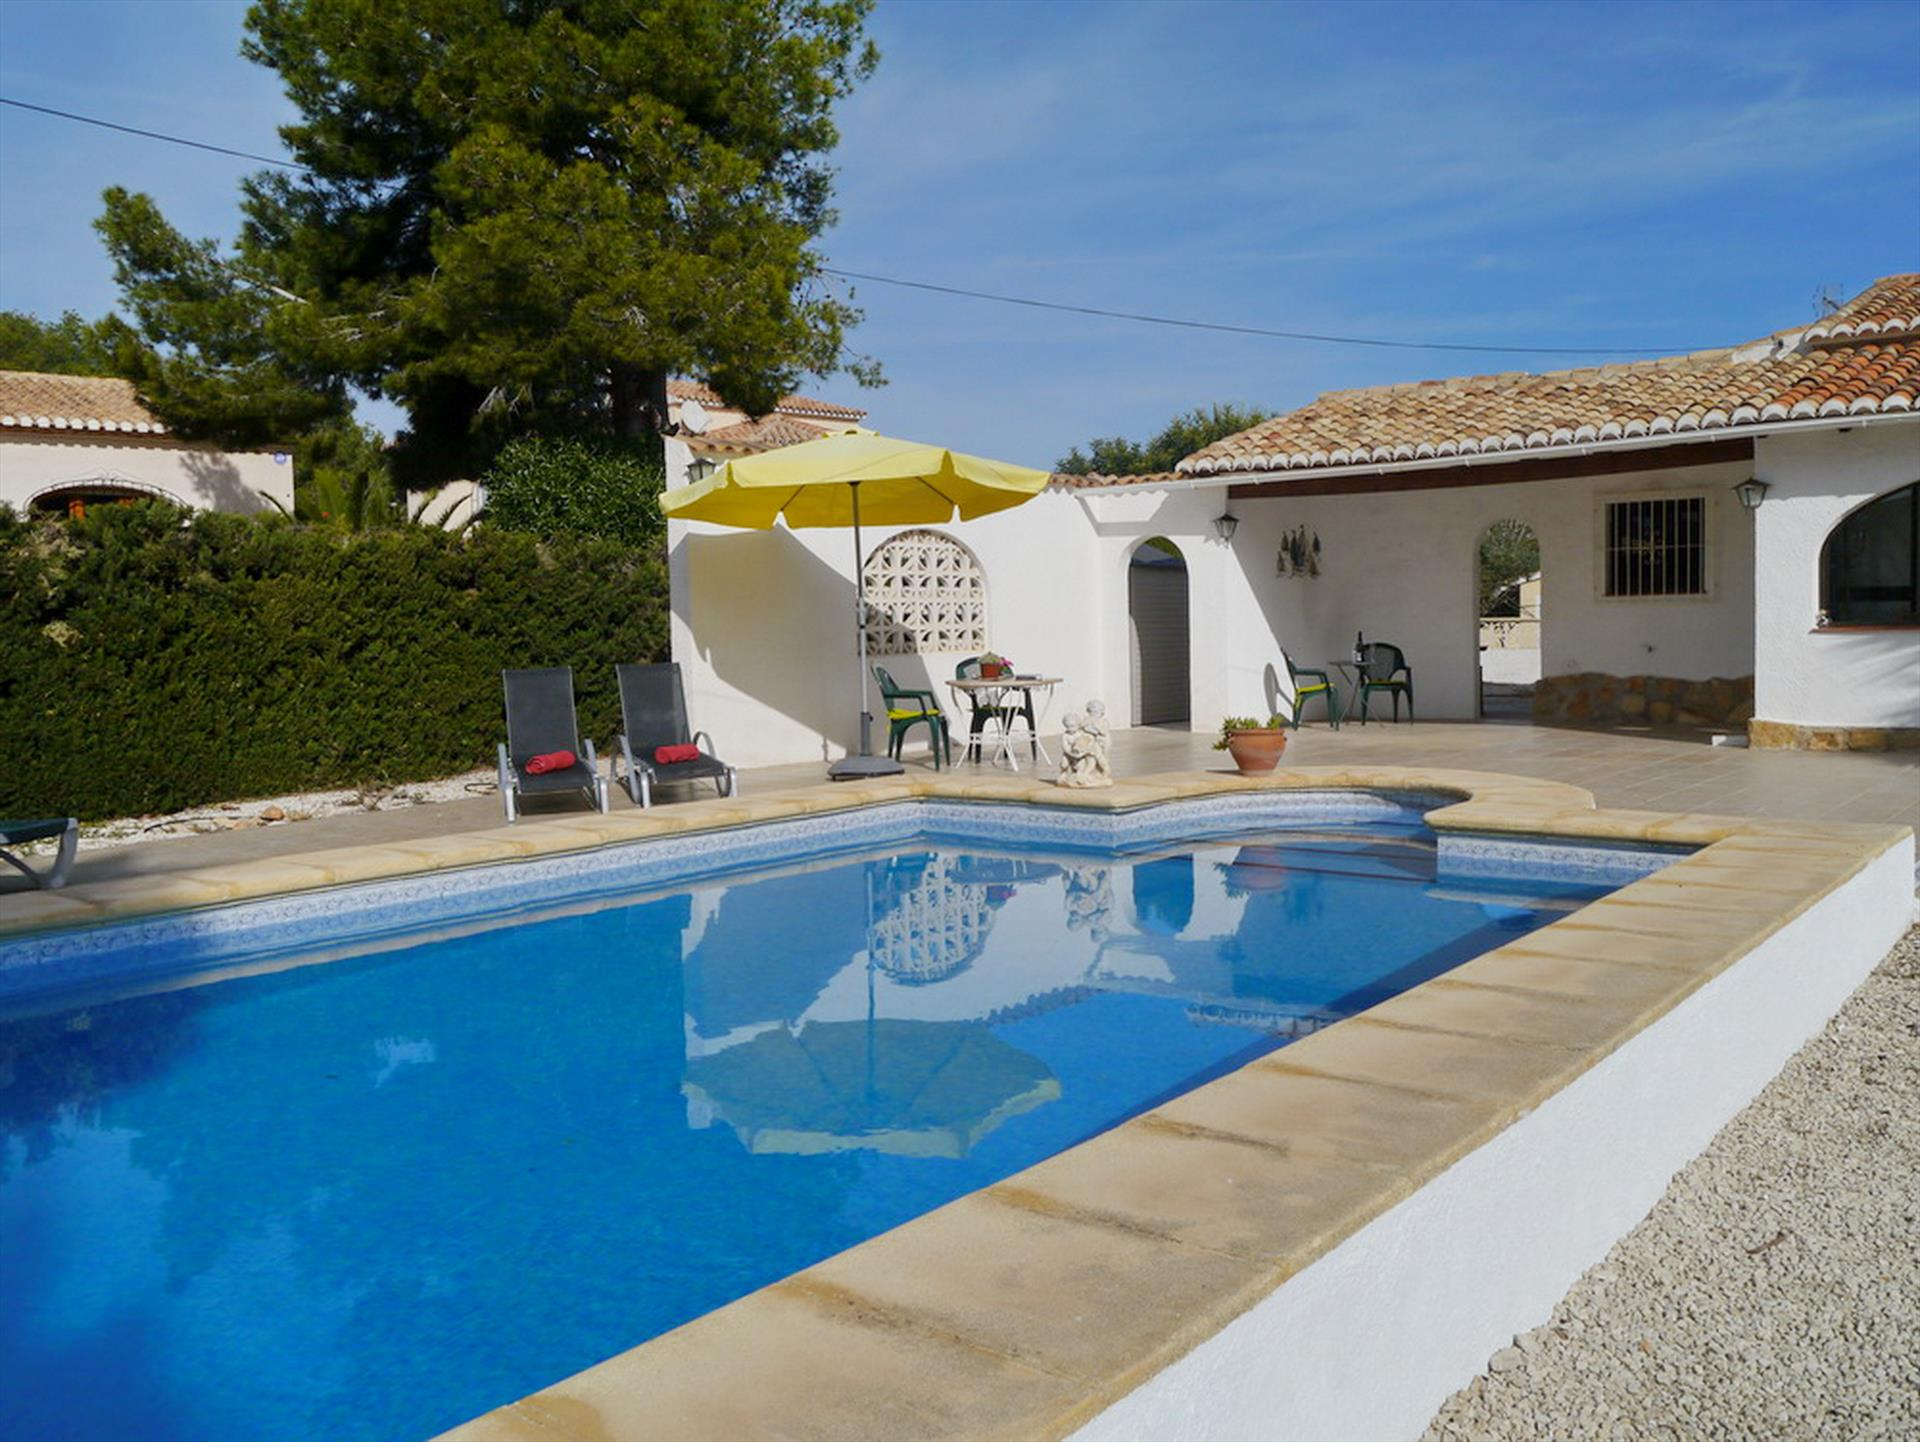 Gondola, Classic and cheerful villa  with private pool in Benissa, on the Costa Blanca, Spain for 4 persons.....